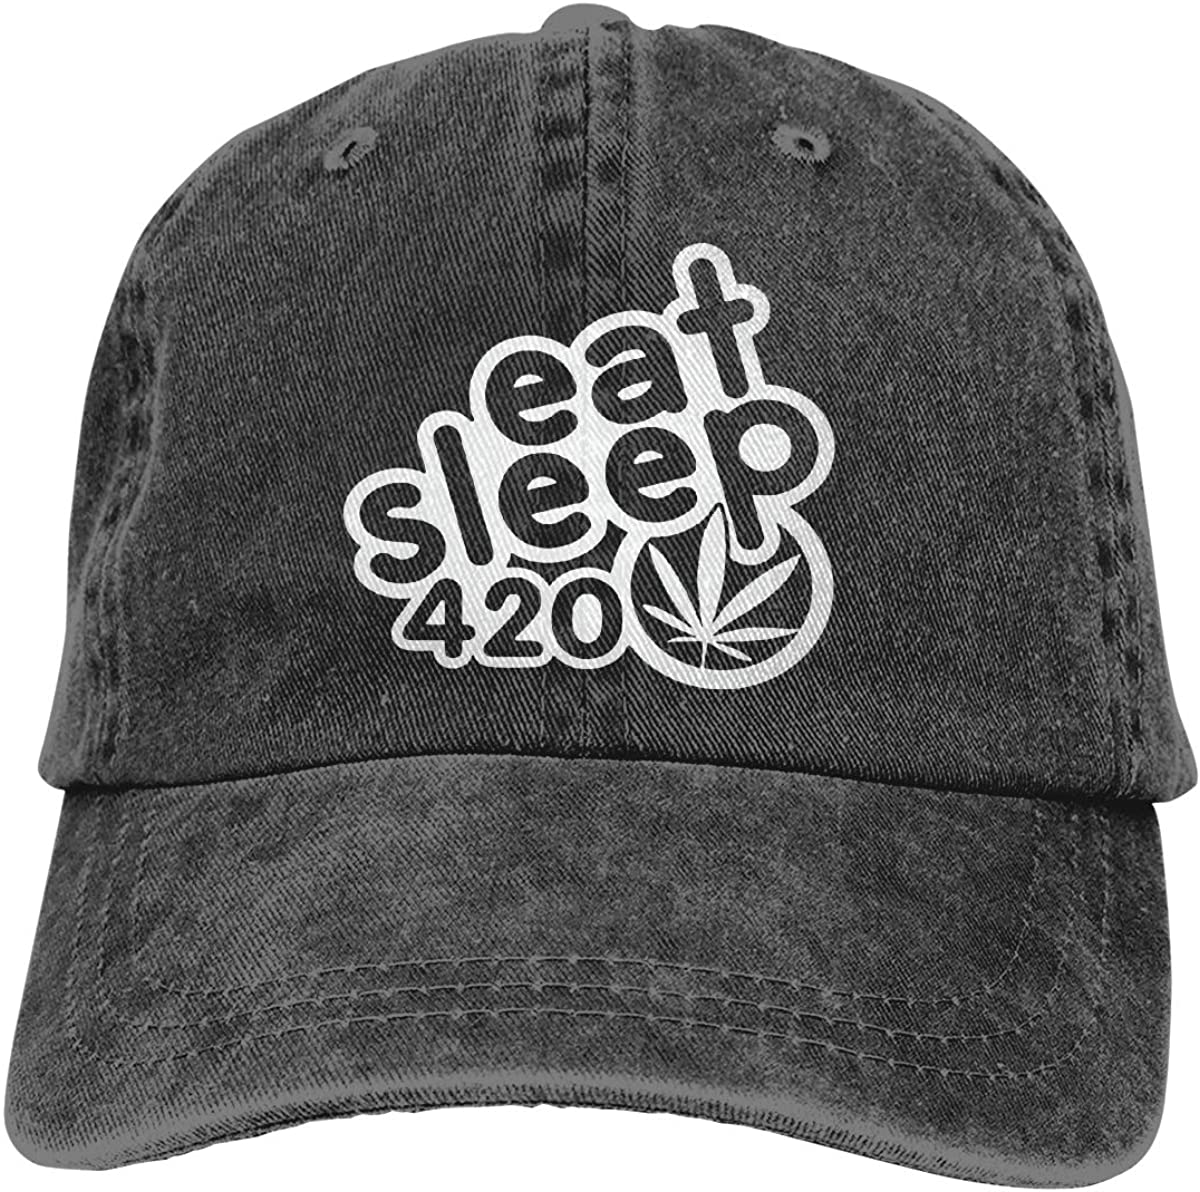 PMGM-C Eat Sleep 420 Adult Personalize Jeans Casquette Adjustable Baseball Cap